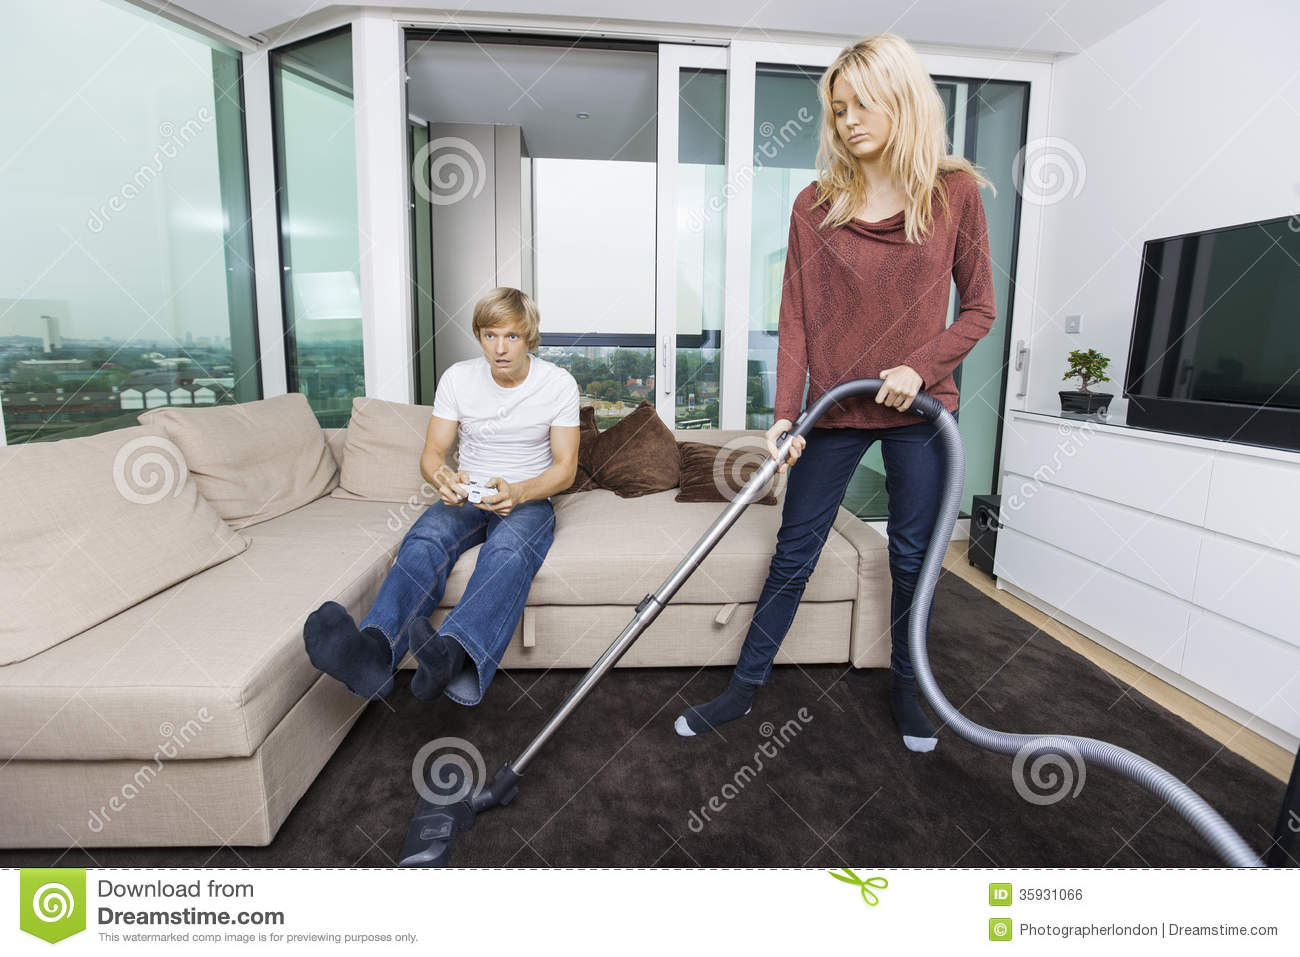 Man Living Room Woman Vacuuming While Man Play Video Game In Living Room At Home